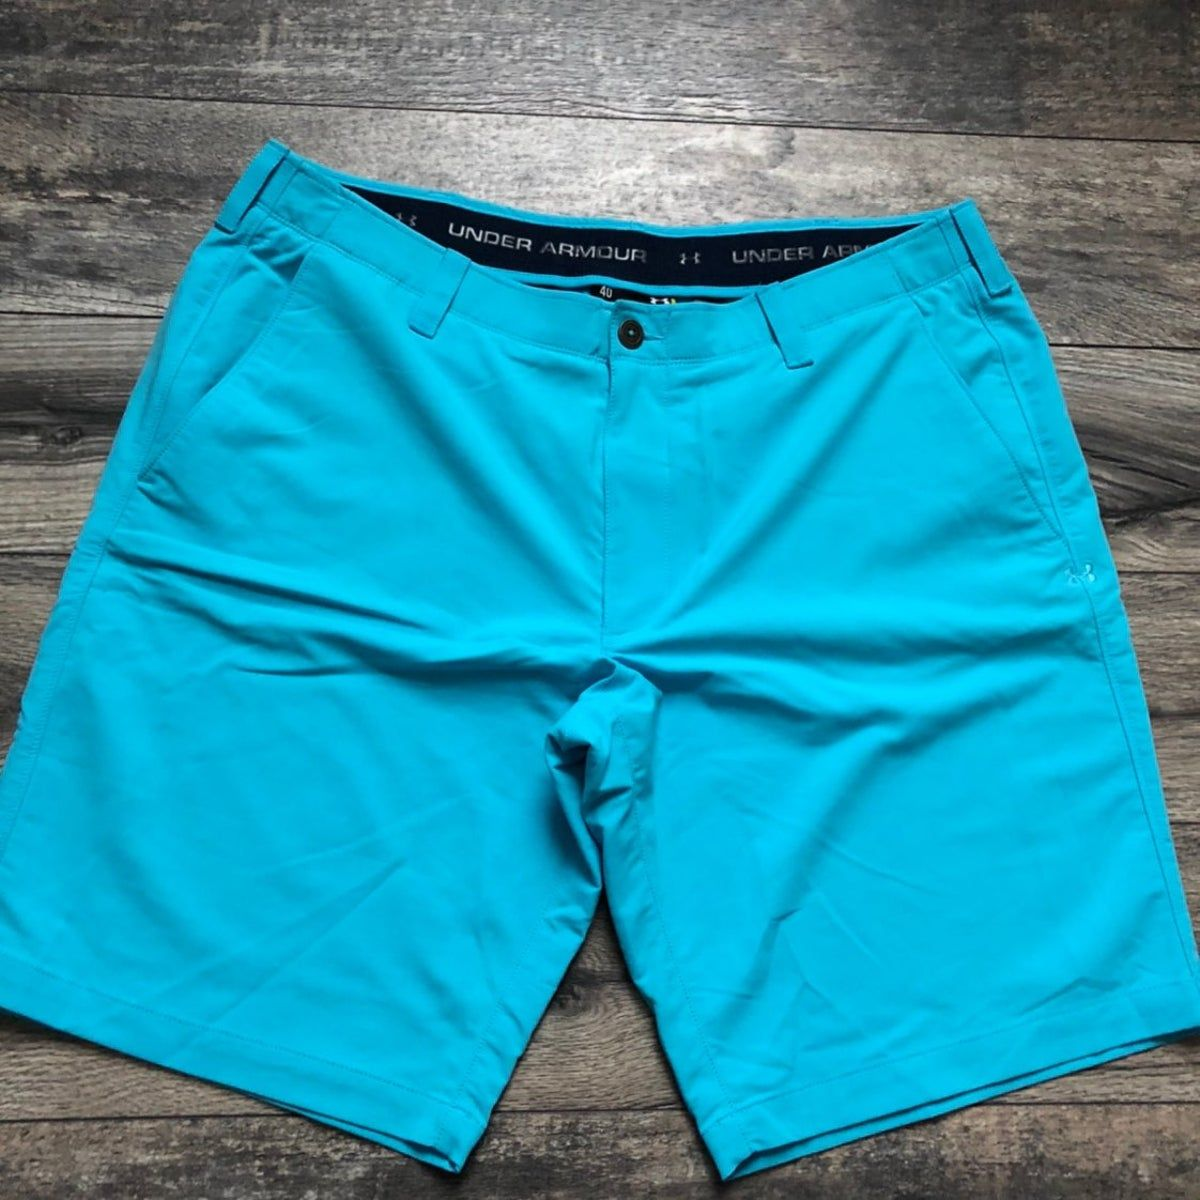 Under Armour light blue golf shorts #lightblueshorts